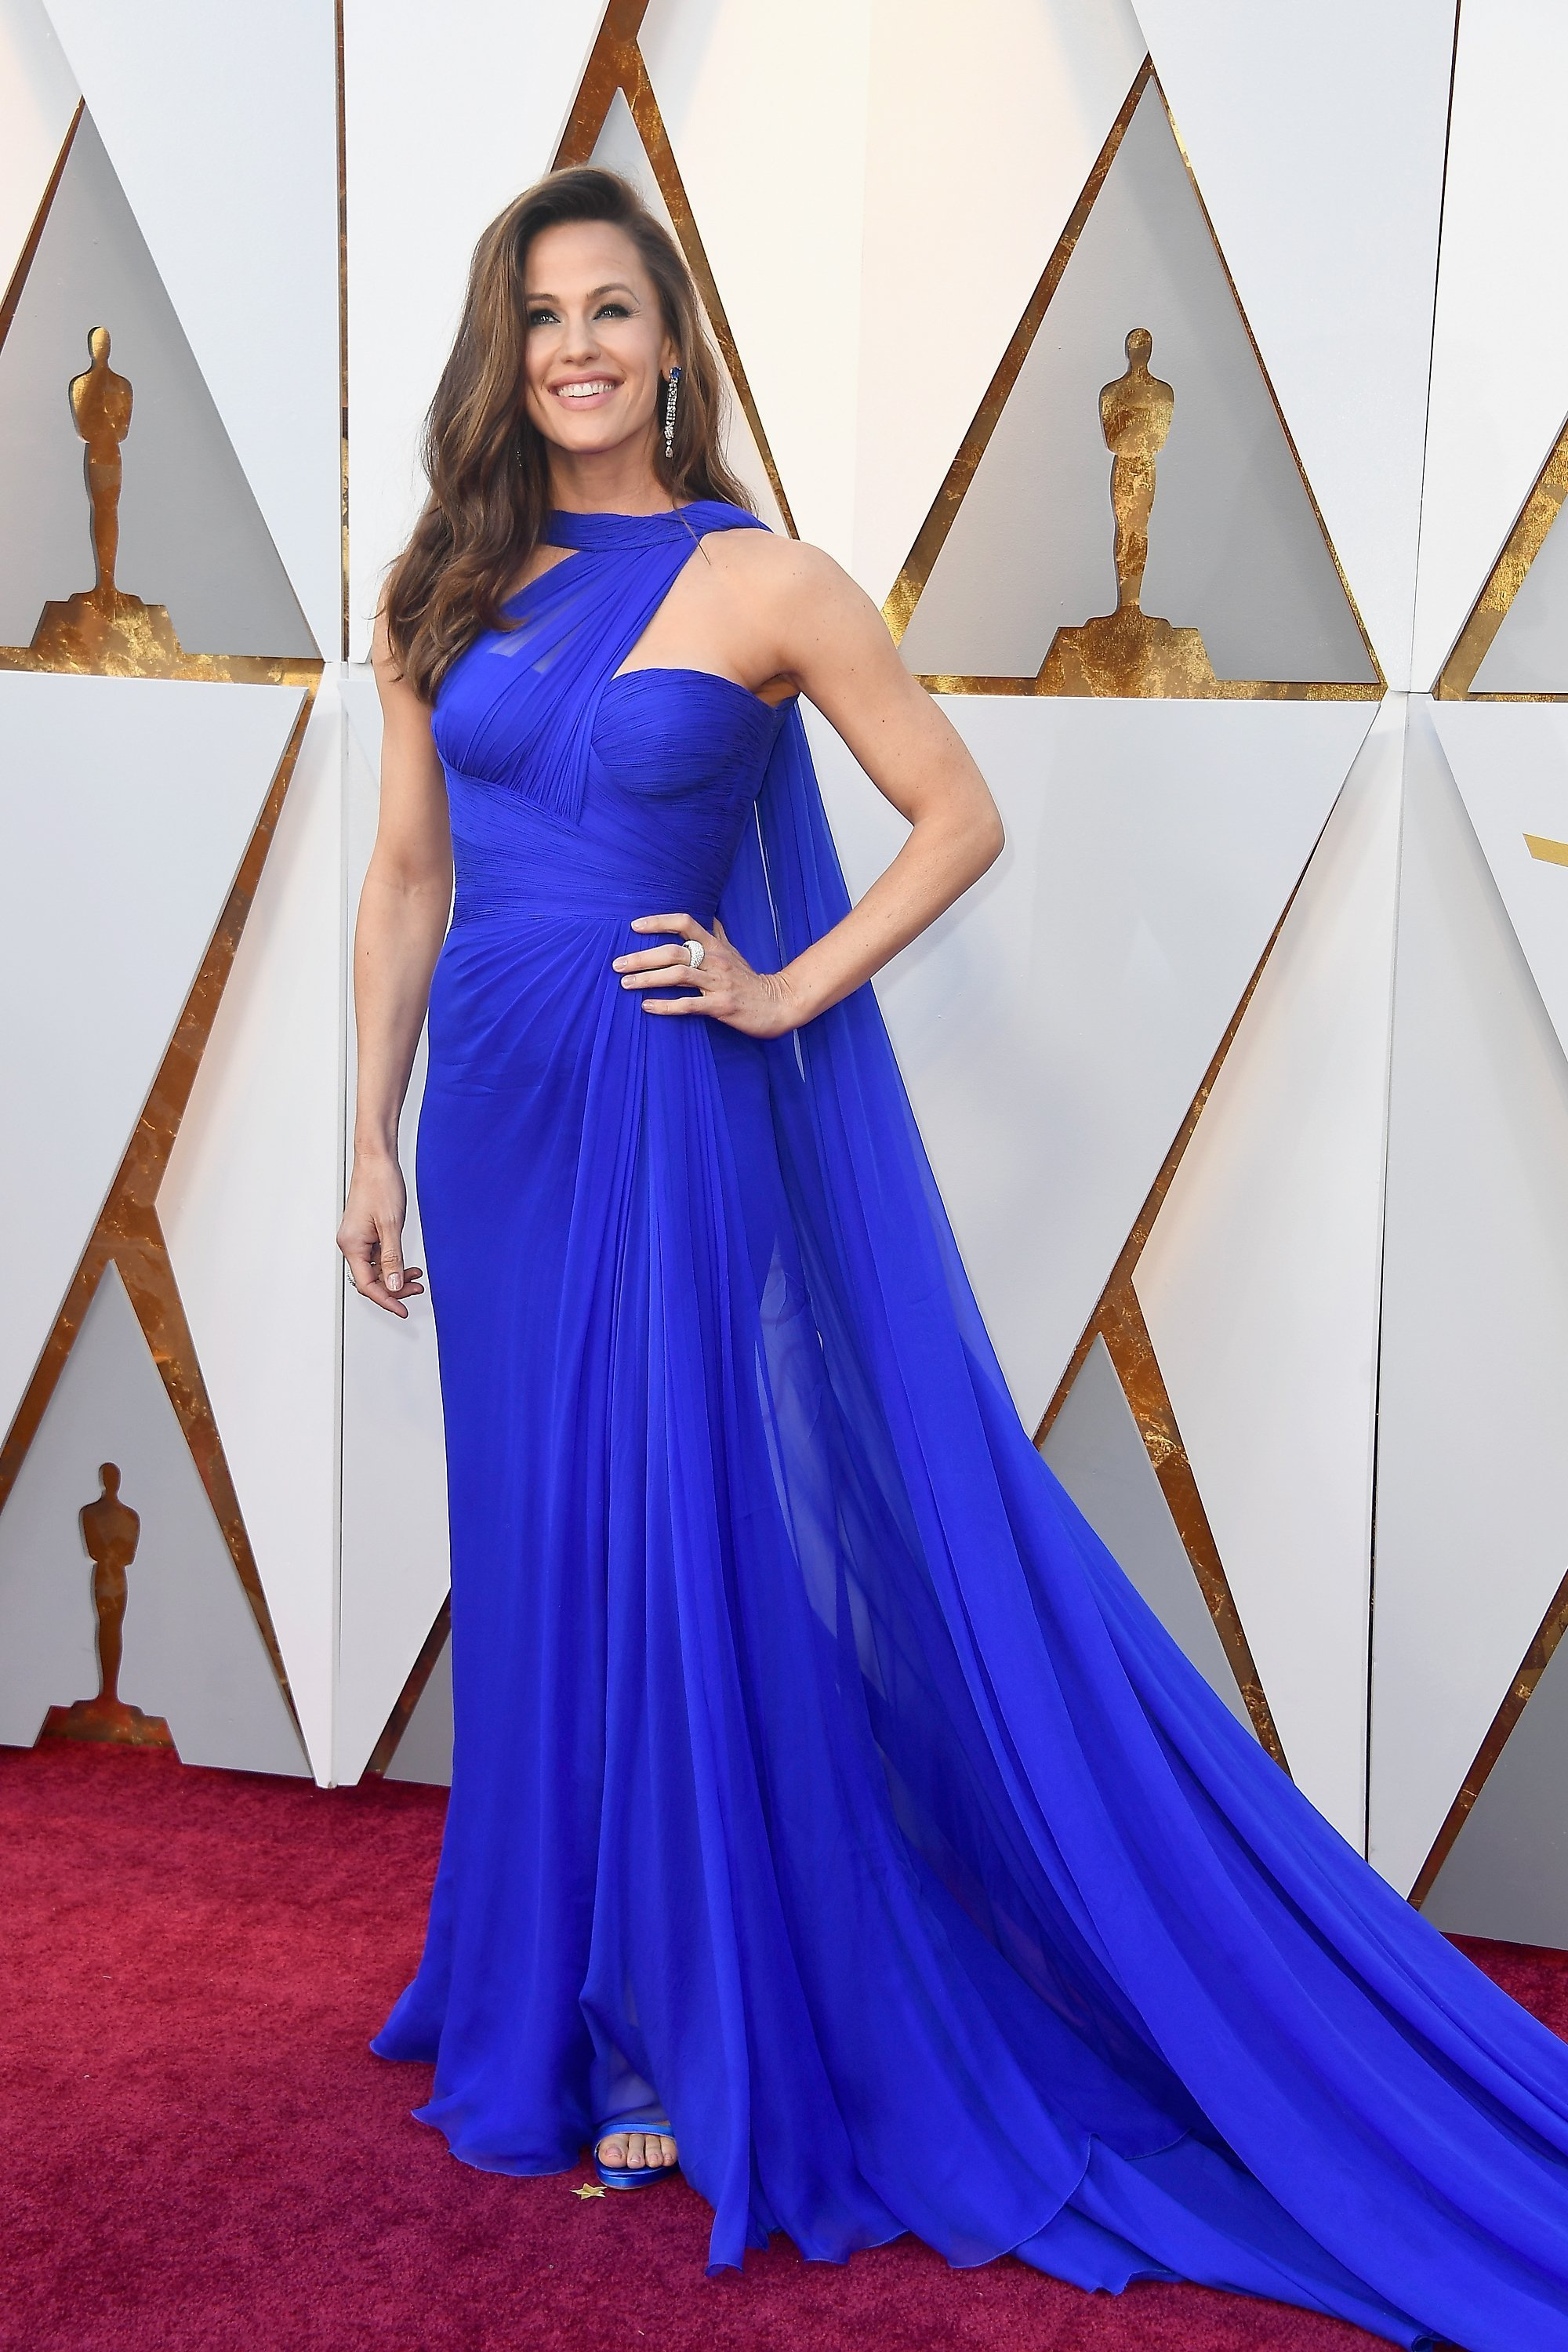 Actress Jennifer Garner attends the 90th annual Academy Awards on Sunday.